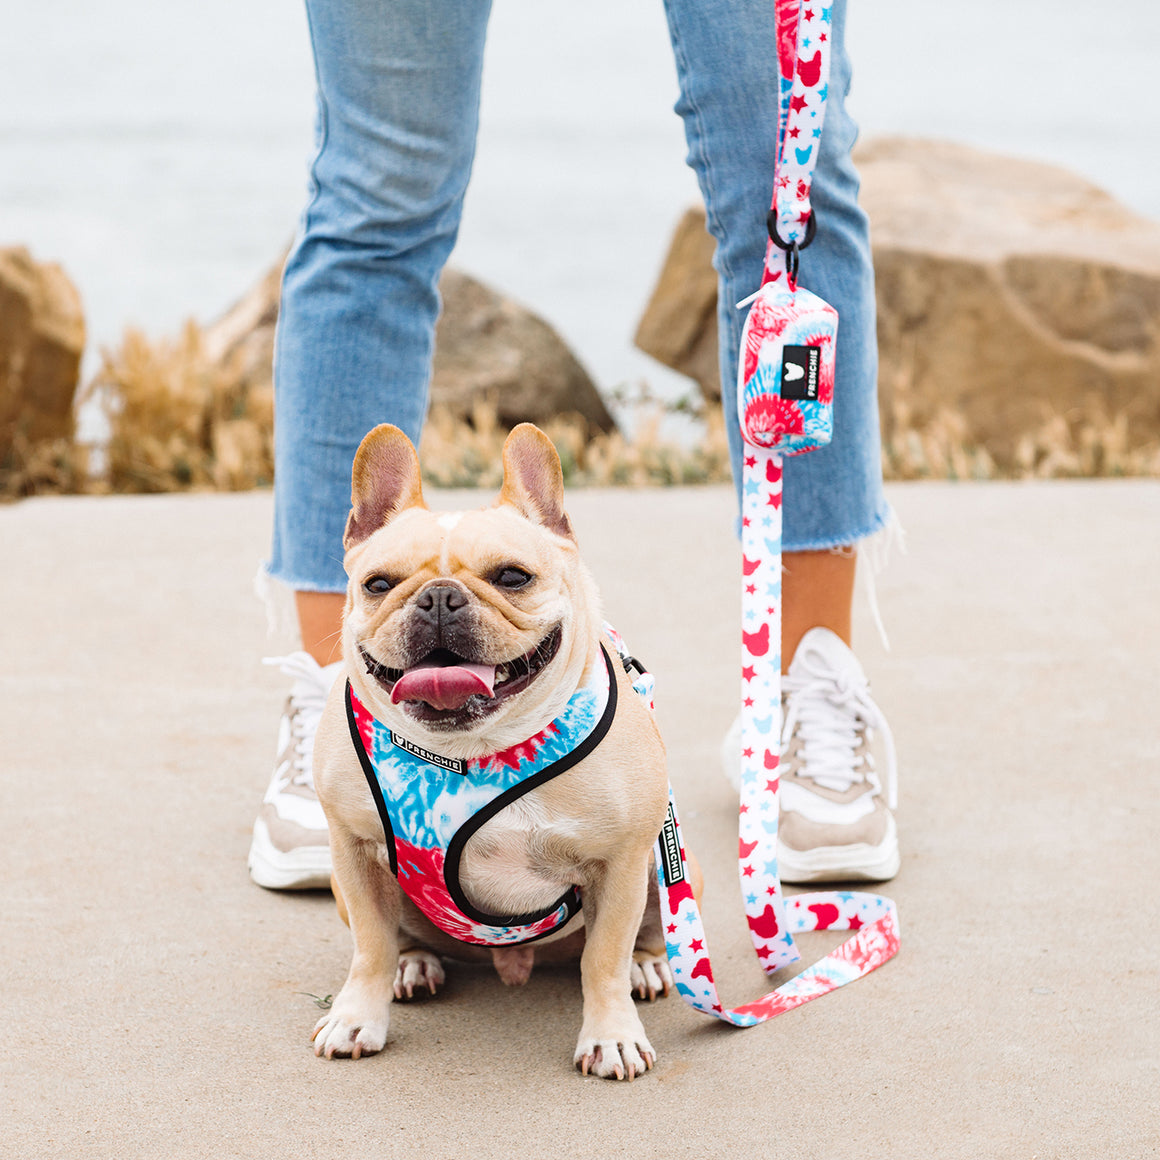 Matching Set- Frenchie Duo Reversible Harness and Comfort Leash- 4th of July Tie Dye